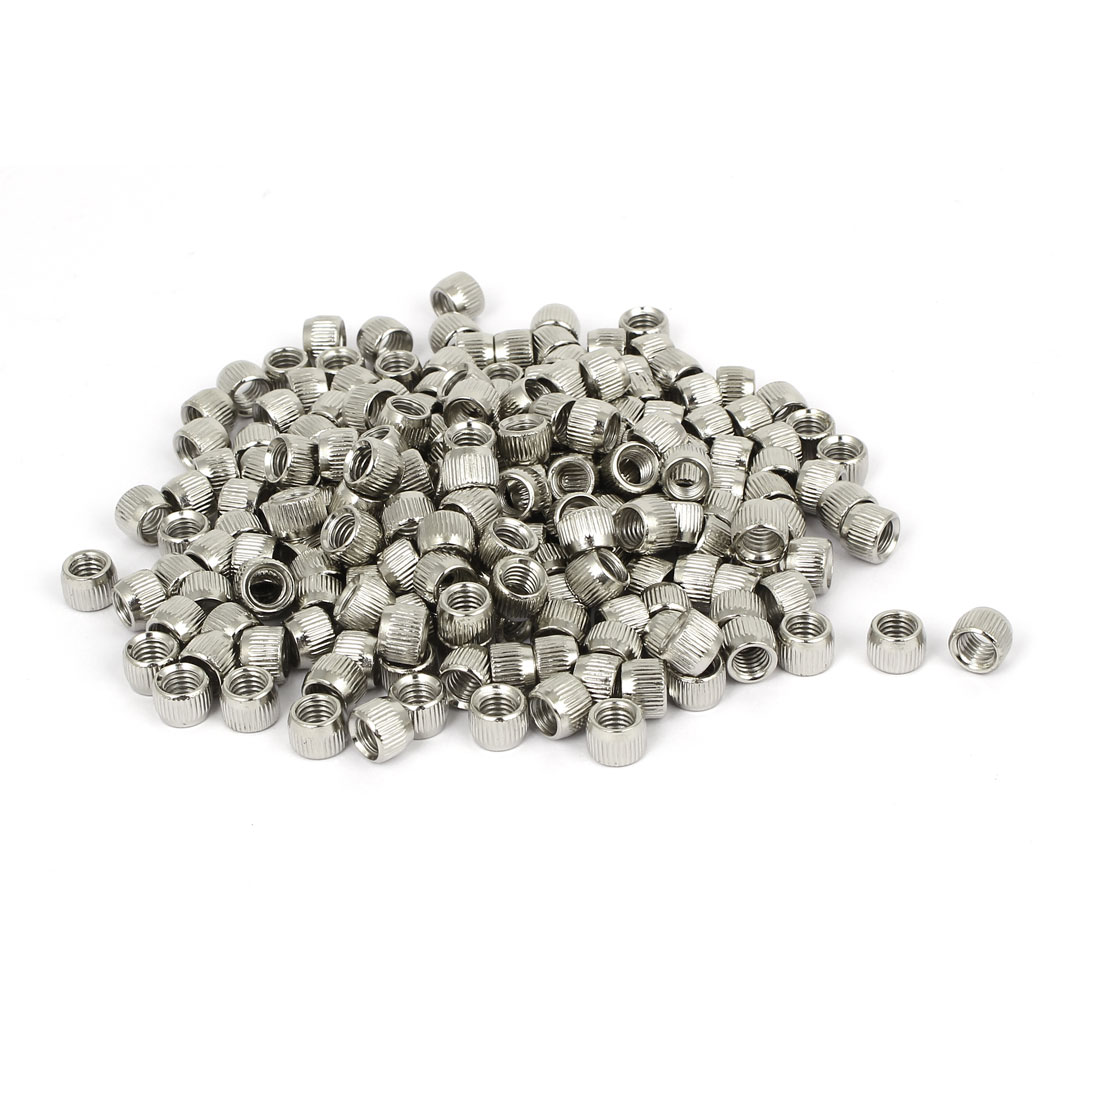 5mm Female Thread Cone Shaped Metal Conical Nut Fasterner 200pcs